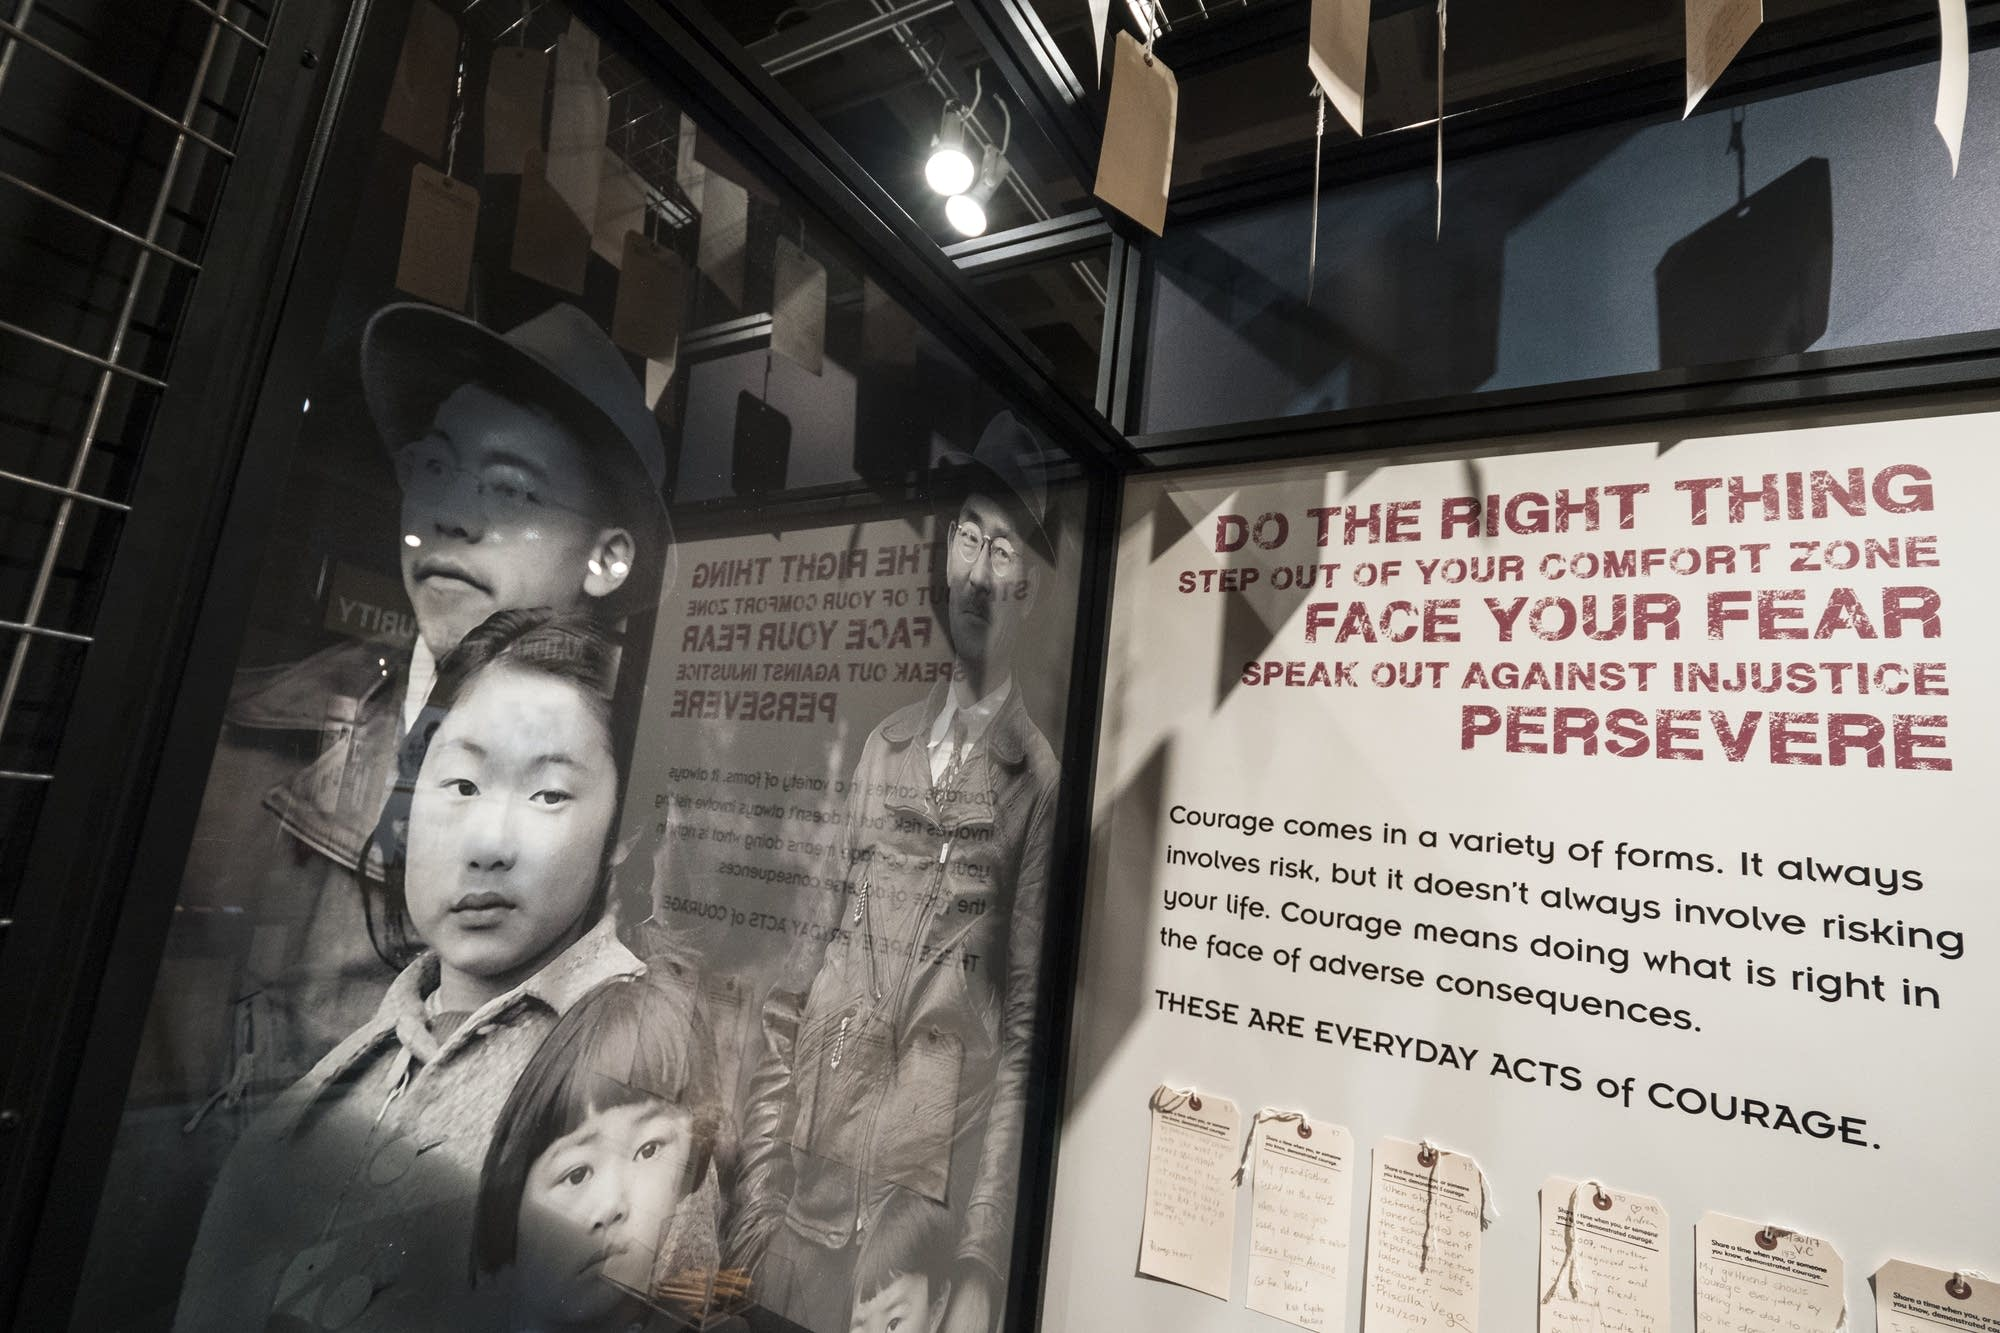 A display asks guests to share experiences of everyday acts of courage.